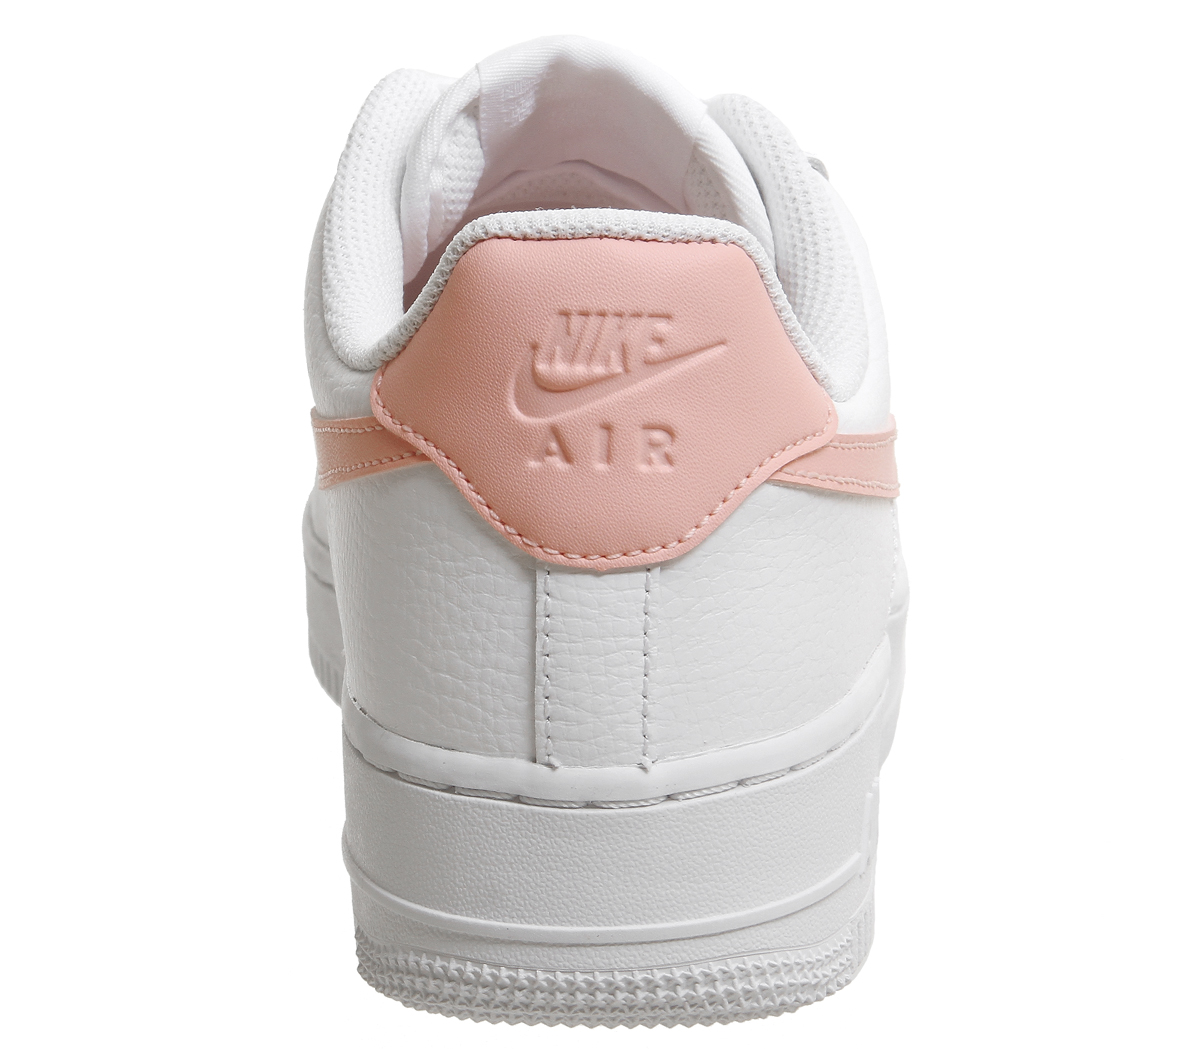 Nike Air Force 1 Hi LX Just Do It Special Edition JDI White